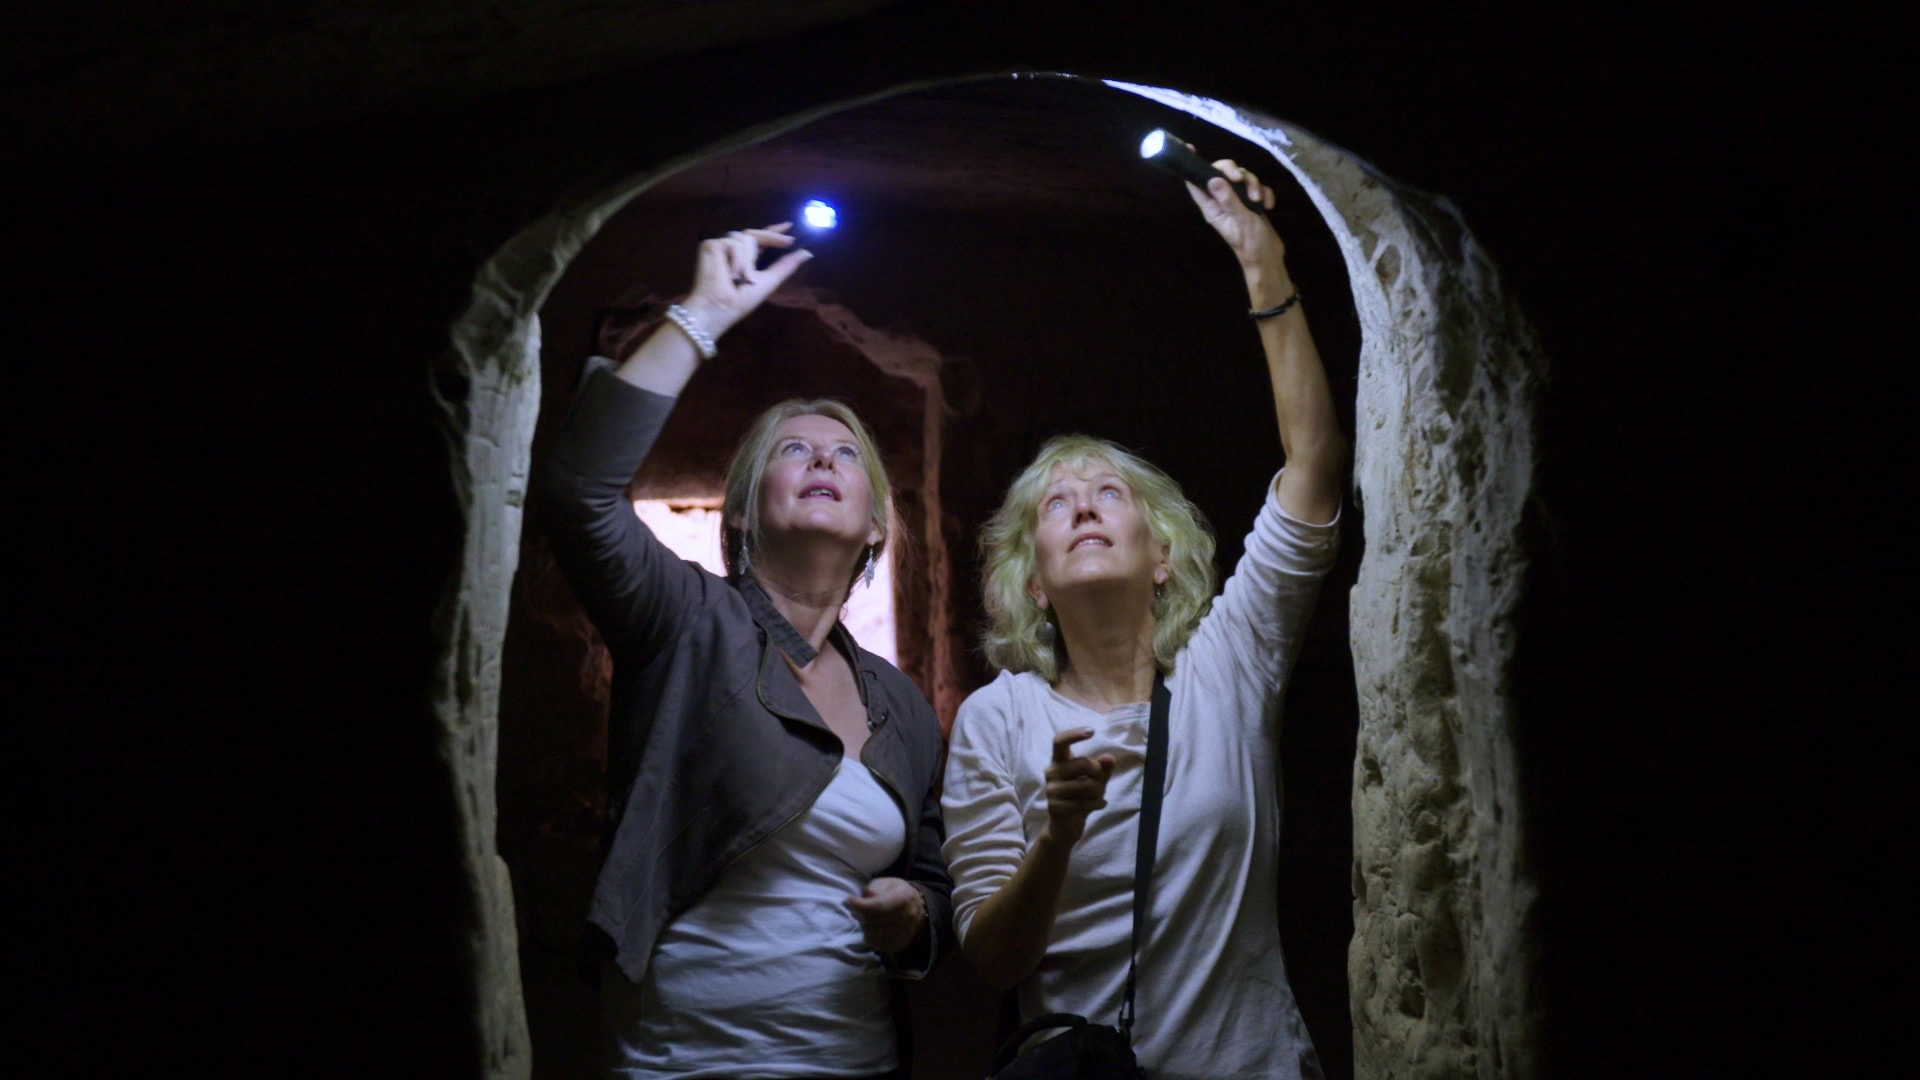 Les femmes disciples de Jésus d'Anna Cox image Helen Bond et Joan Taylor - The Salome Cave documentaire